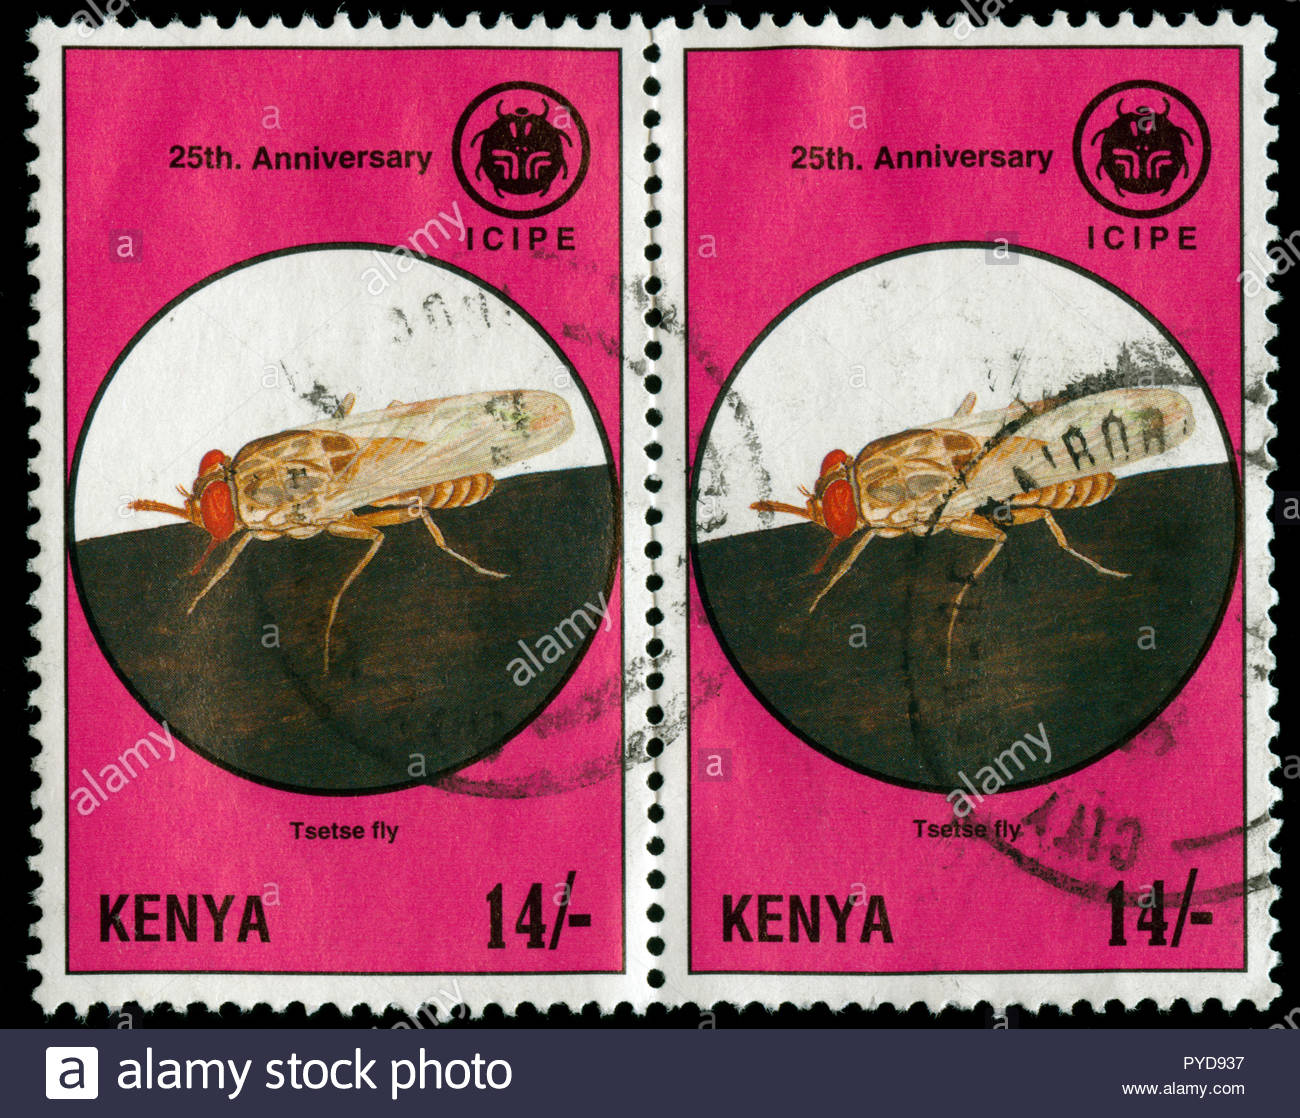 Postmarked stamps from Kenya in the  25 Years ICIPE series issued in 1995 Stock Photo